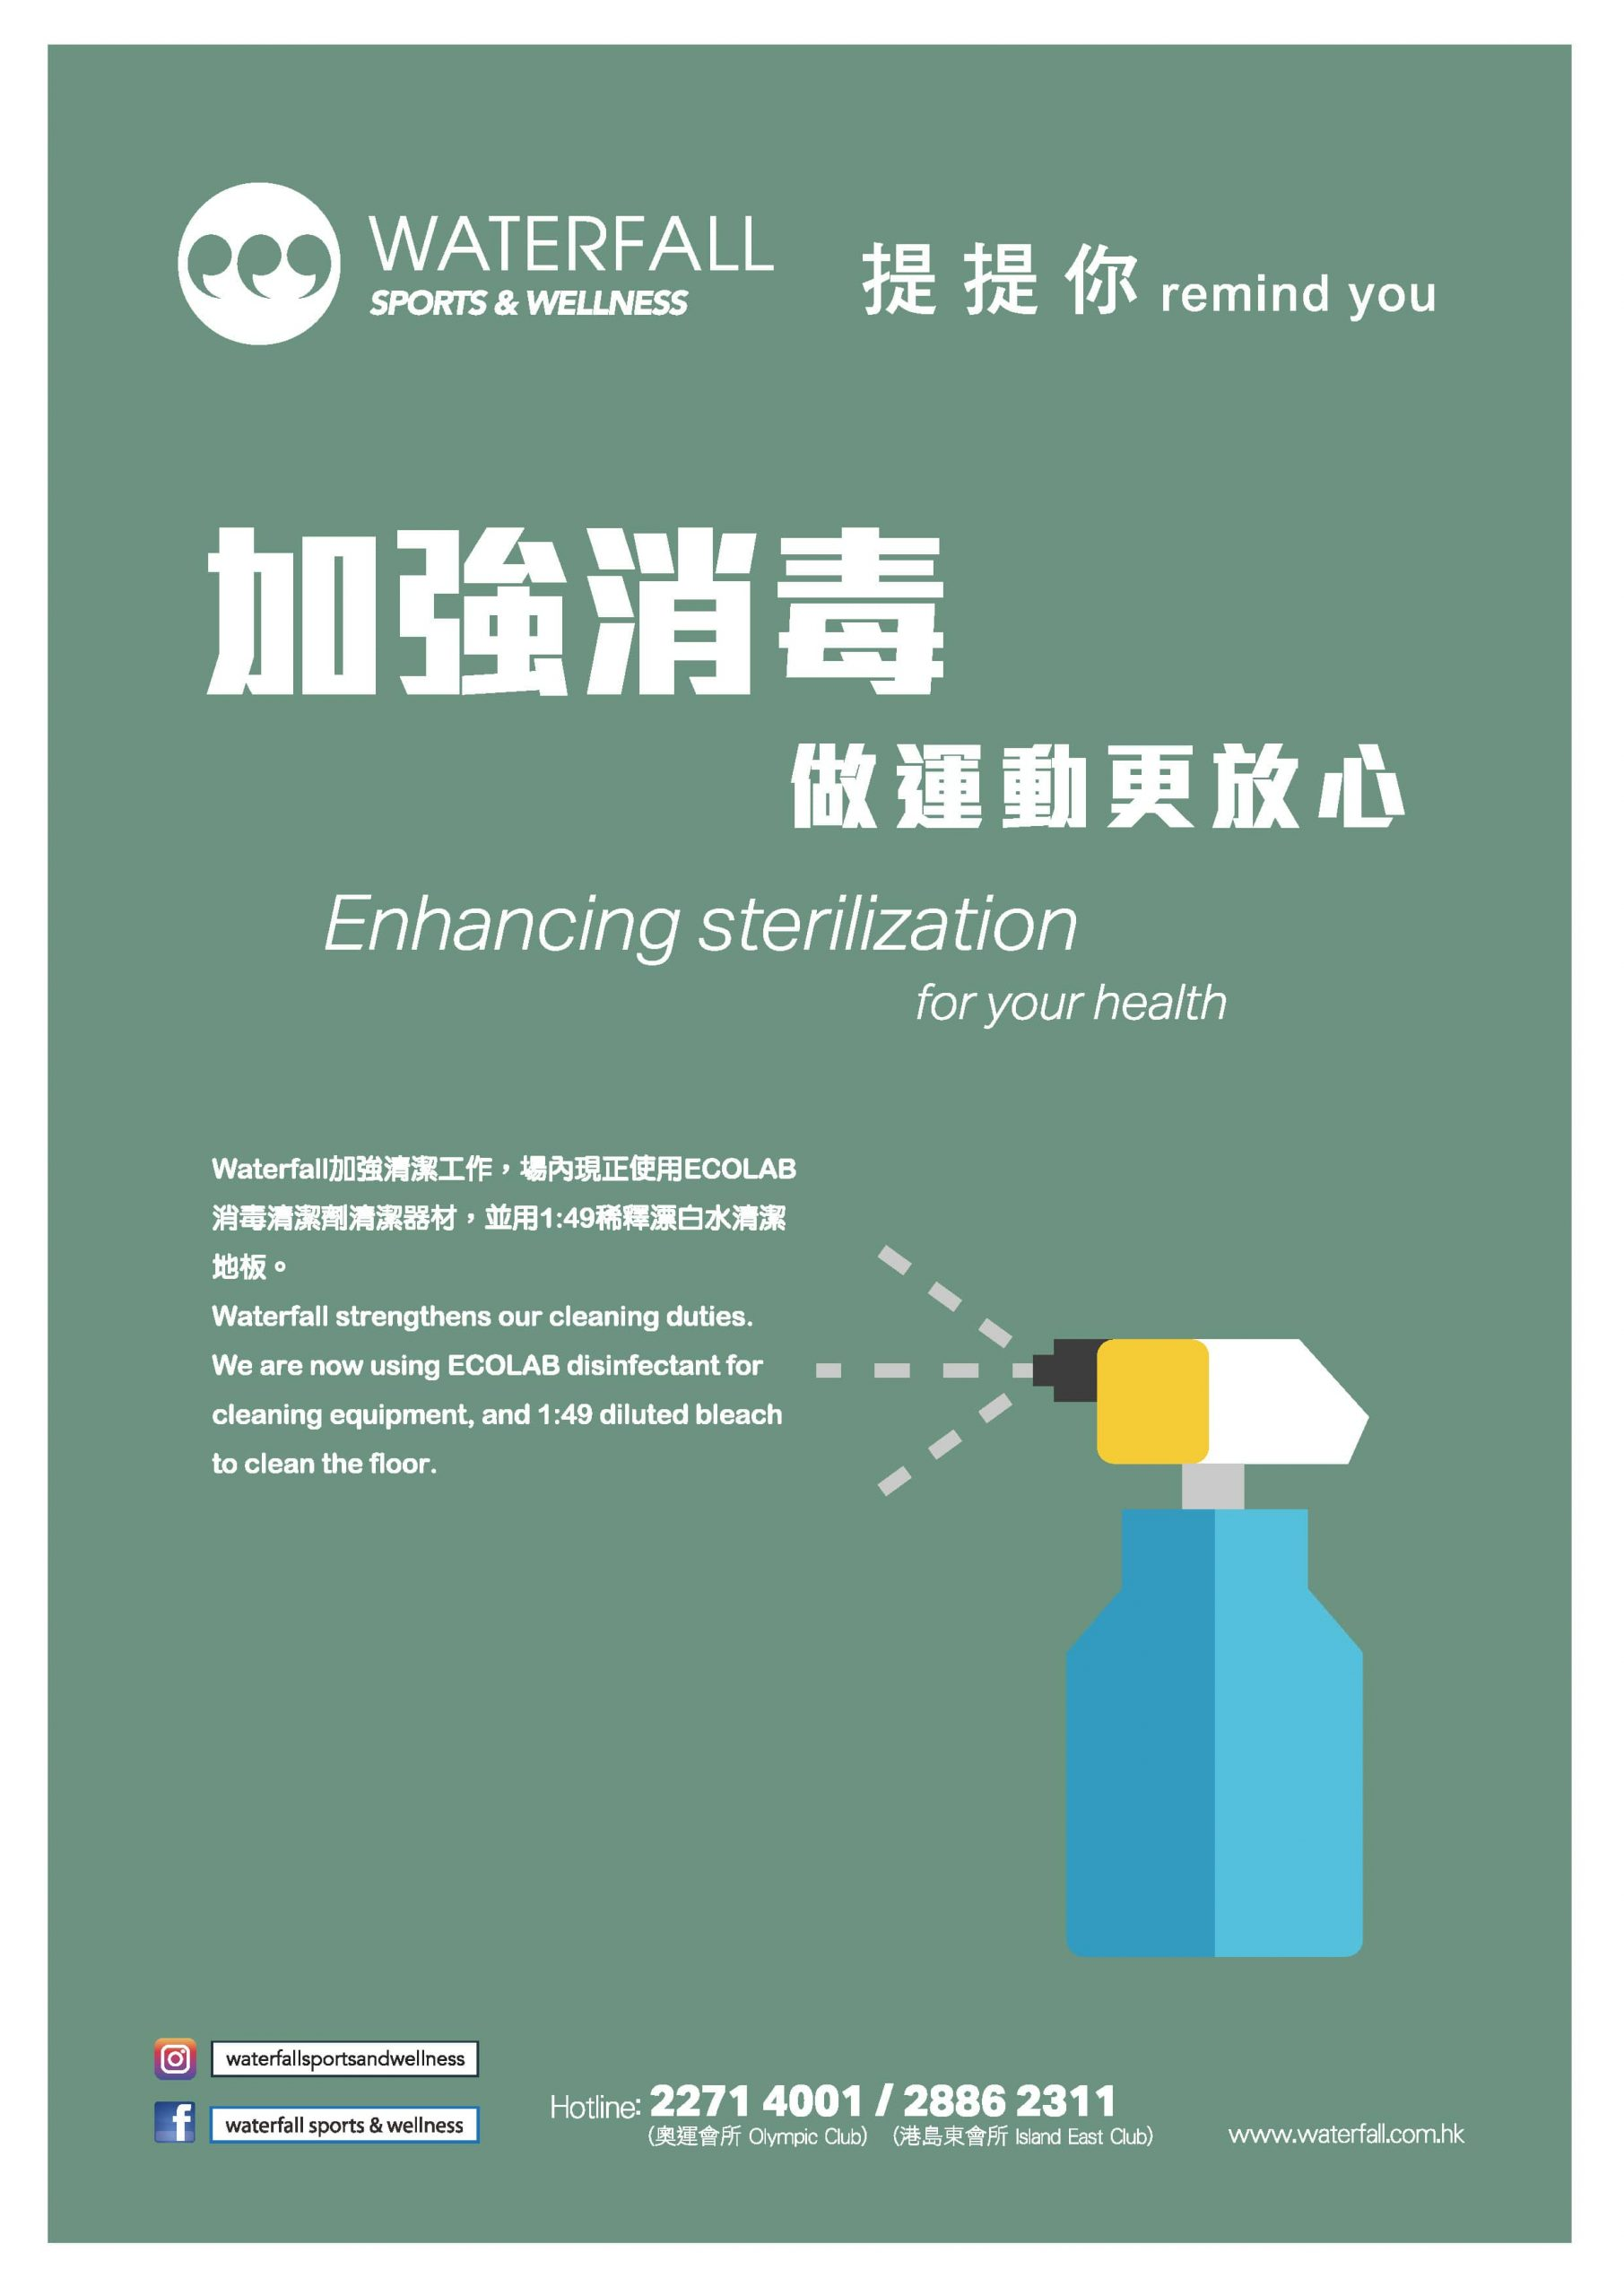 Enhancing Sterilization for your health